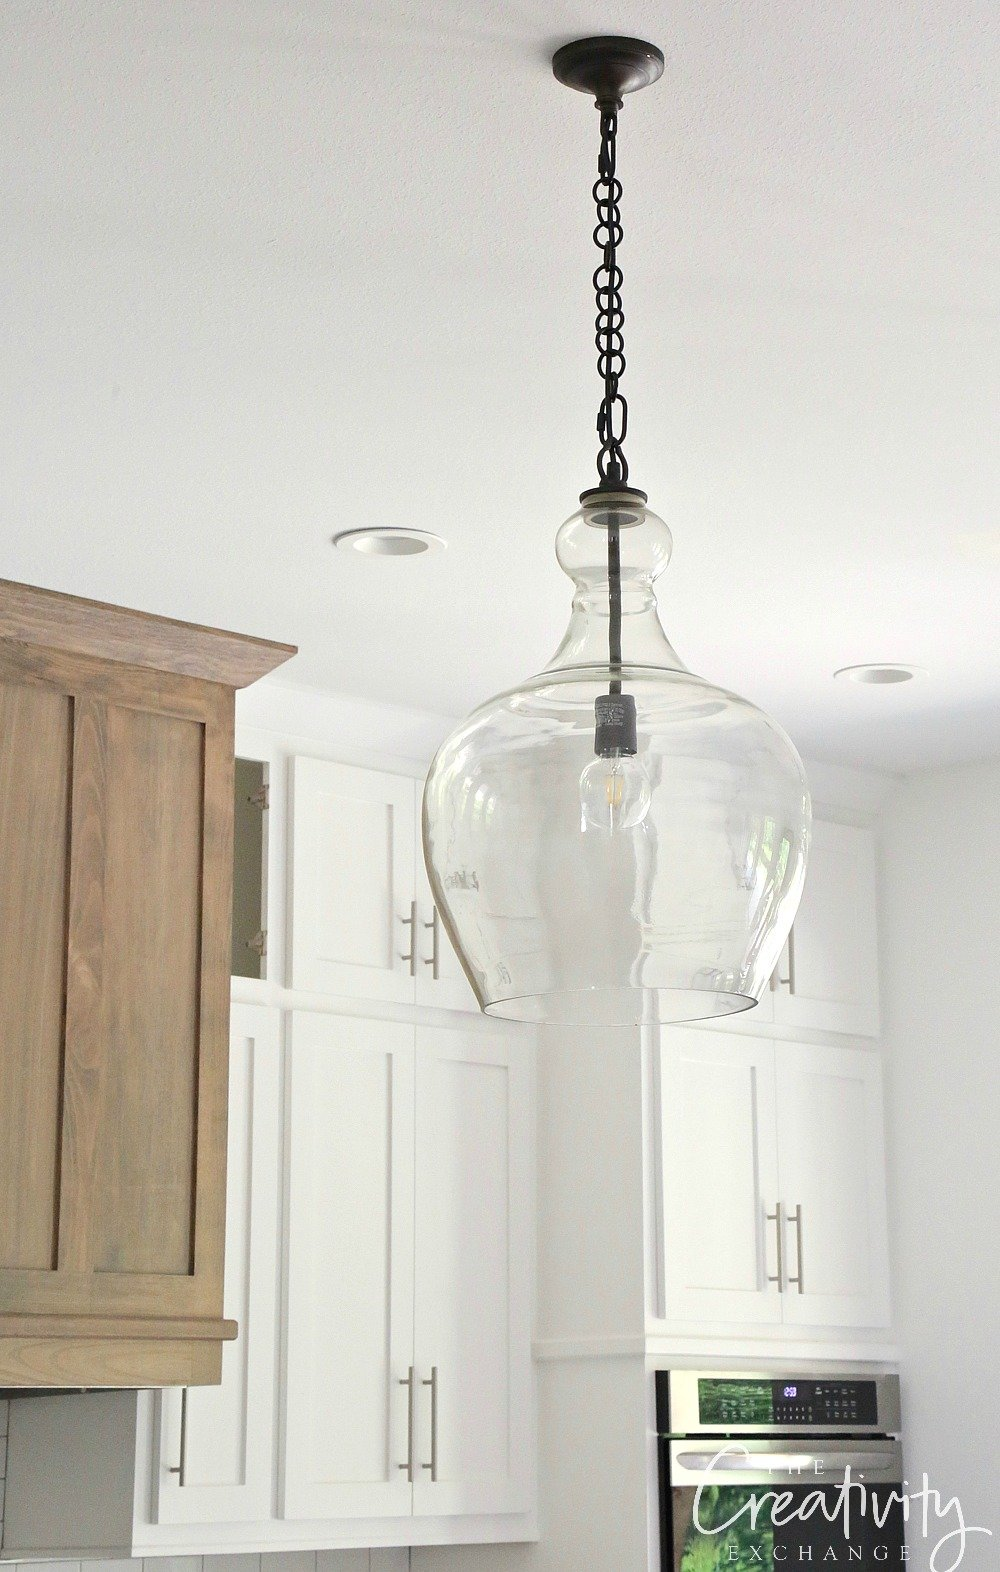 Oversized clear glass pendant light